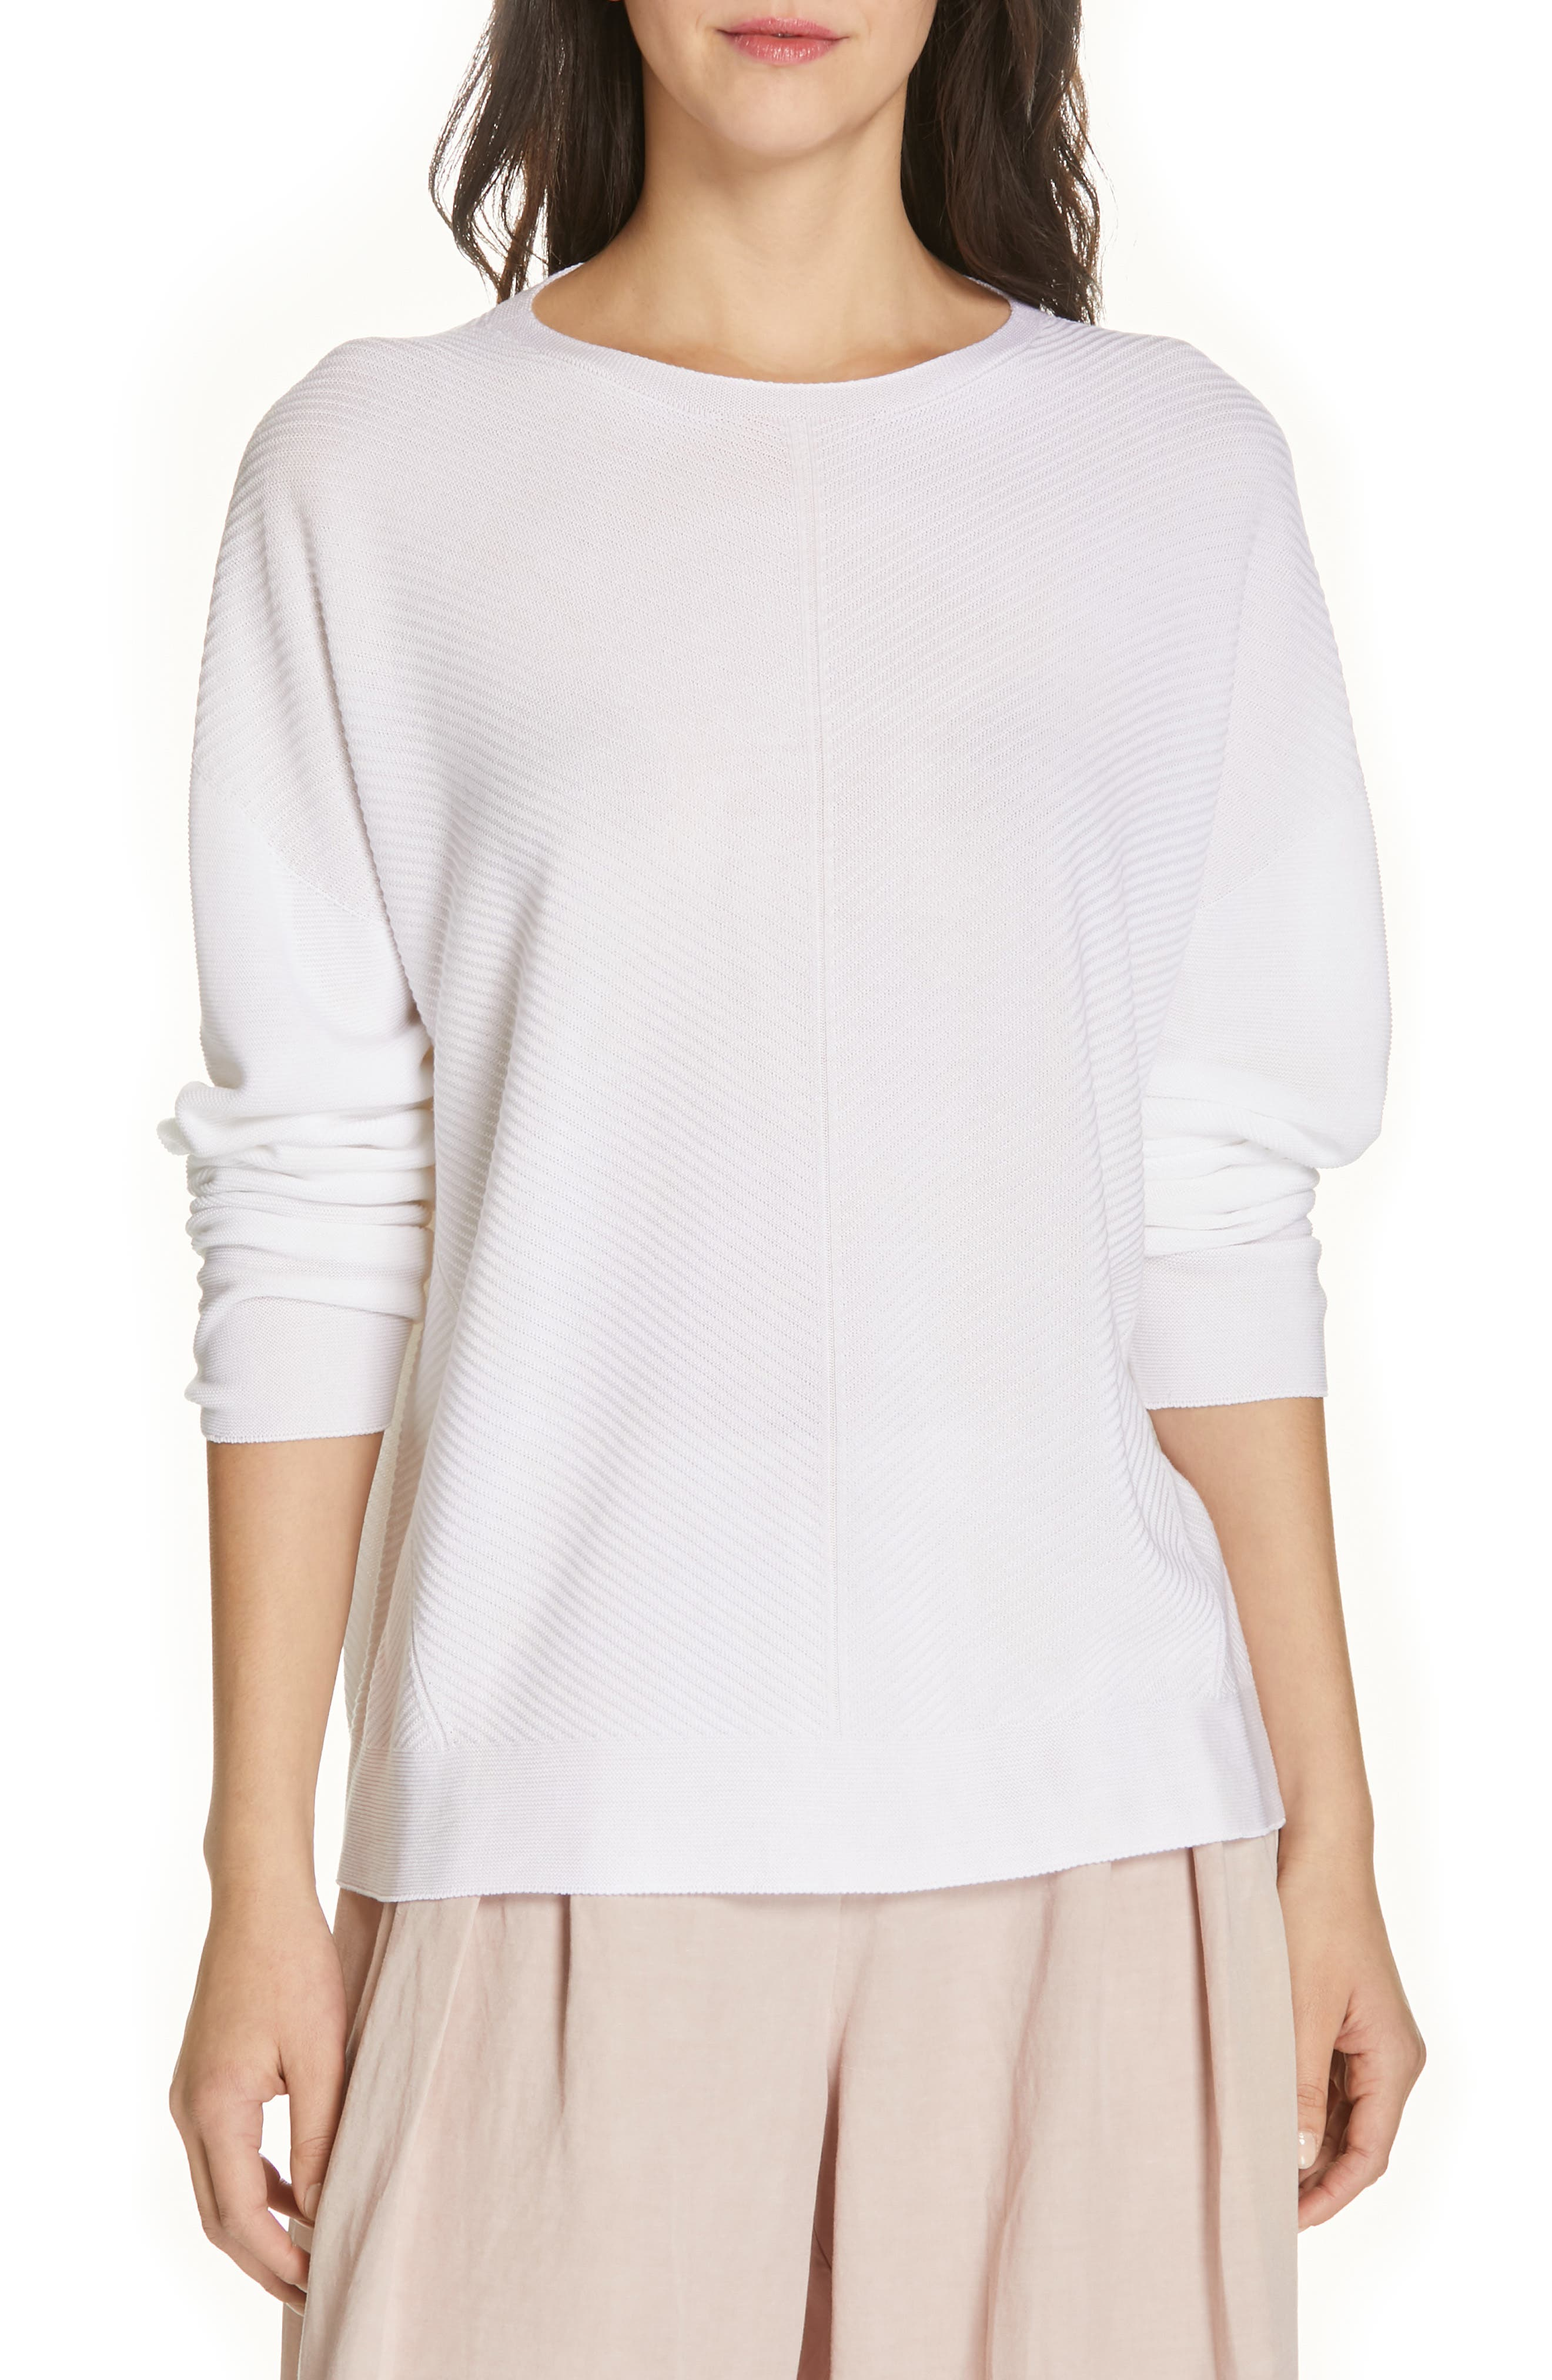 EILEEN FISHER, Round Neck Top, Main thumbnail 1, color, 103